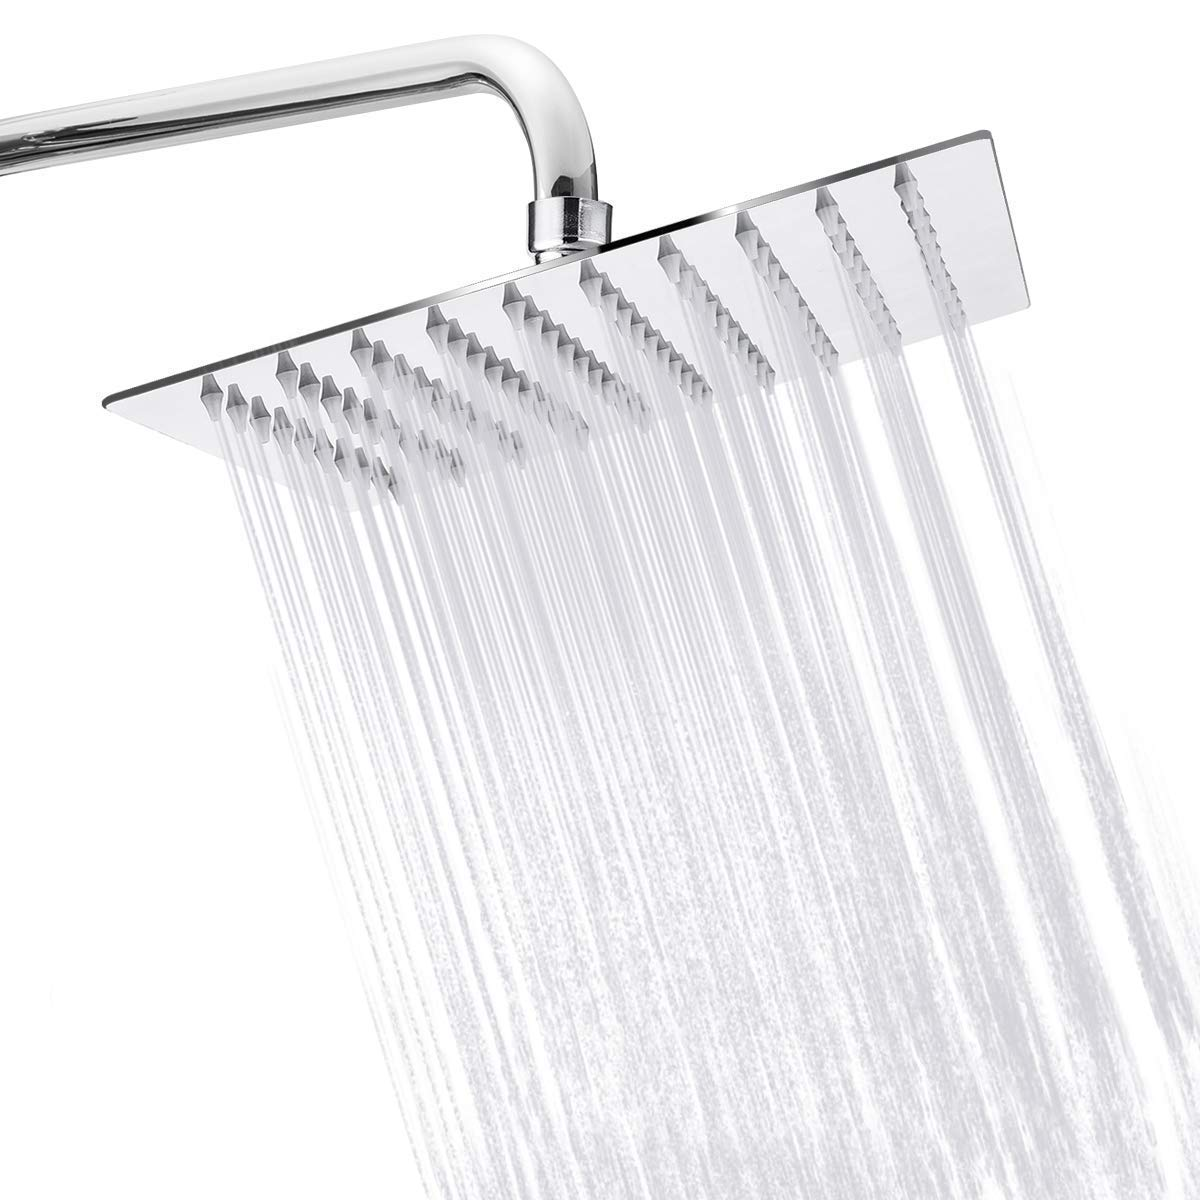 "AquaIV 8"" High Pressure Rainfall Shower Head"